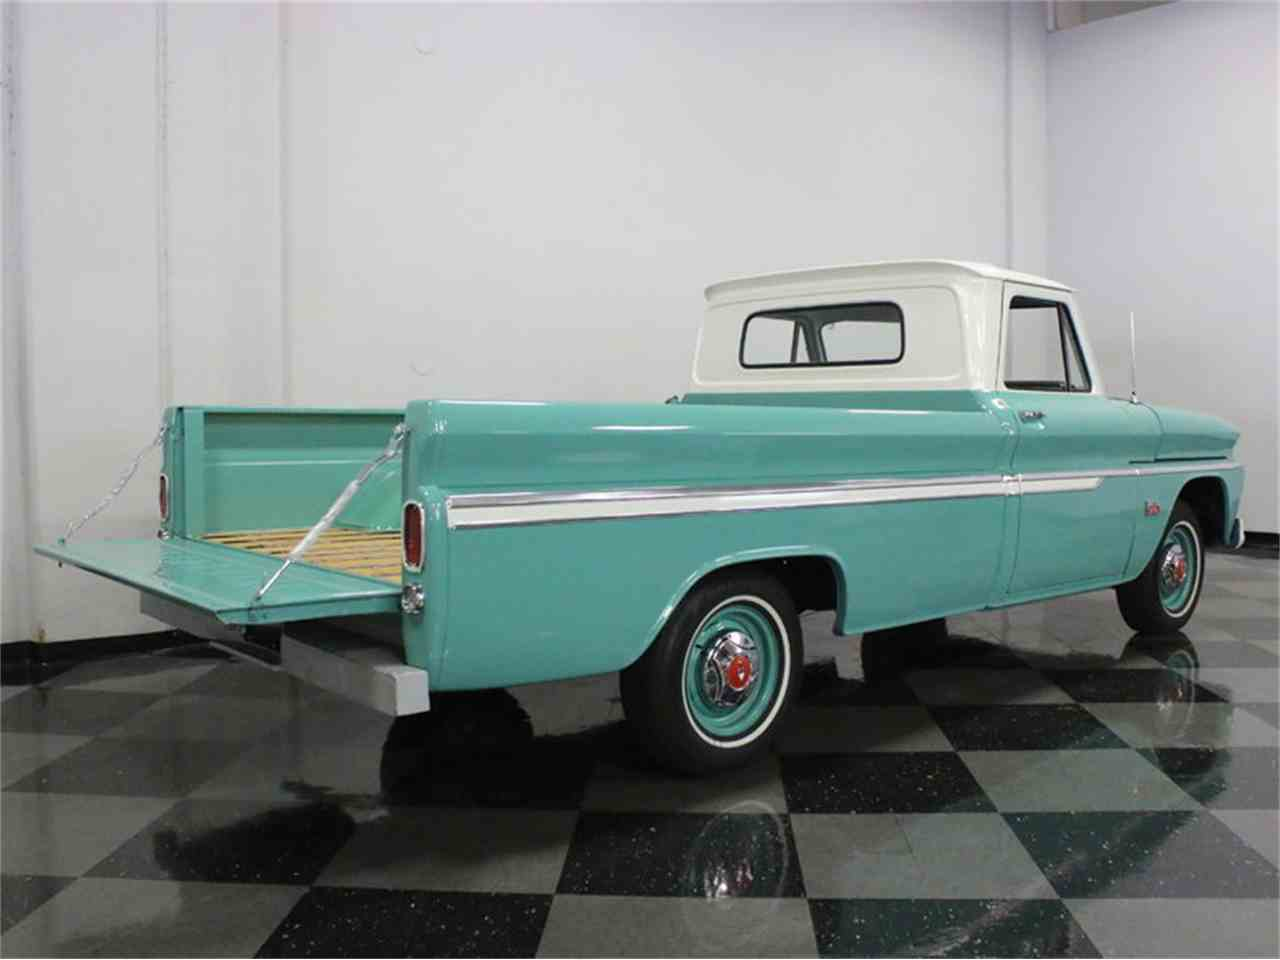 Large Picture of '66 Chevrolet C10 located in Ft Worth Texas - $24,995.00 Offered by Streetside Classics - Dallas / Fort Worth - LUZQ